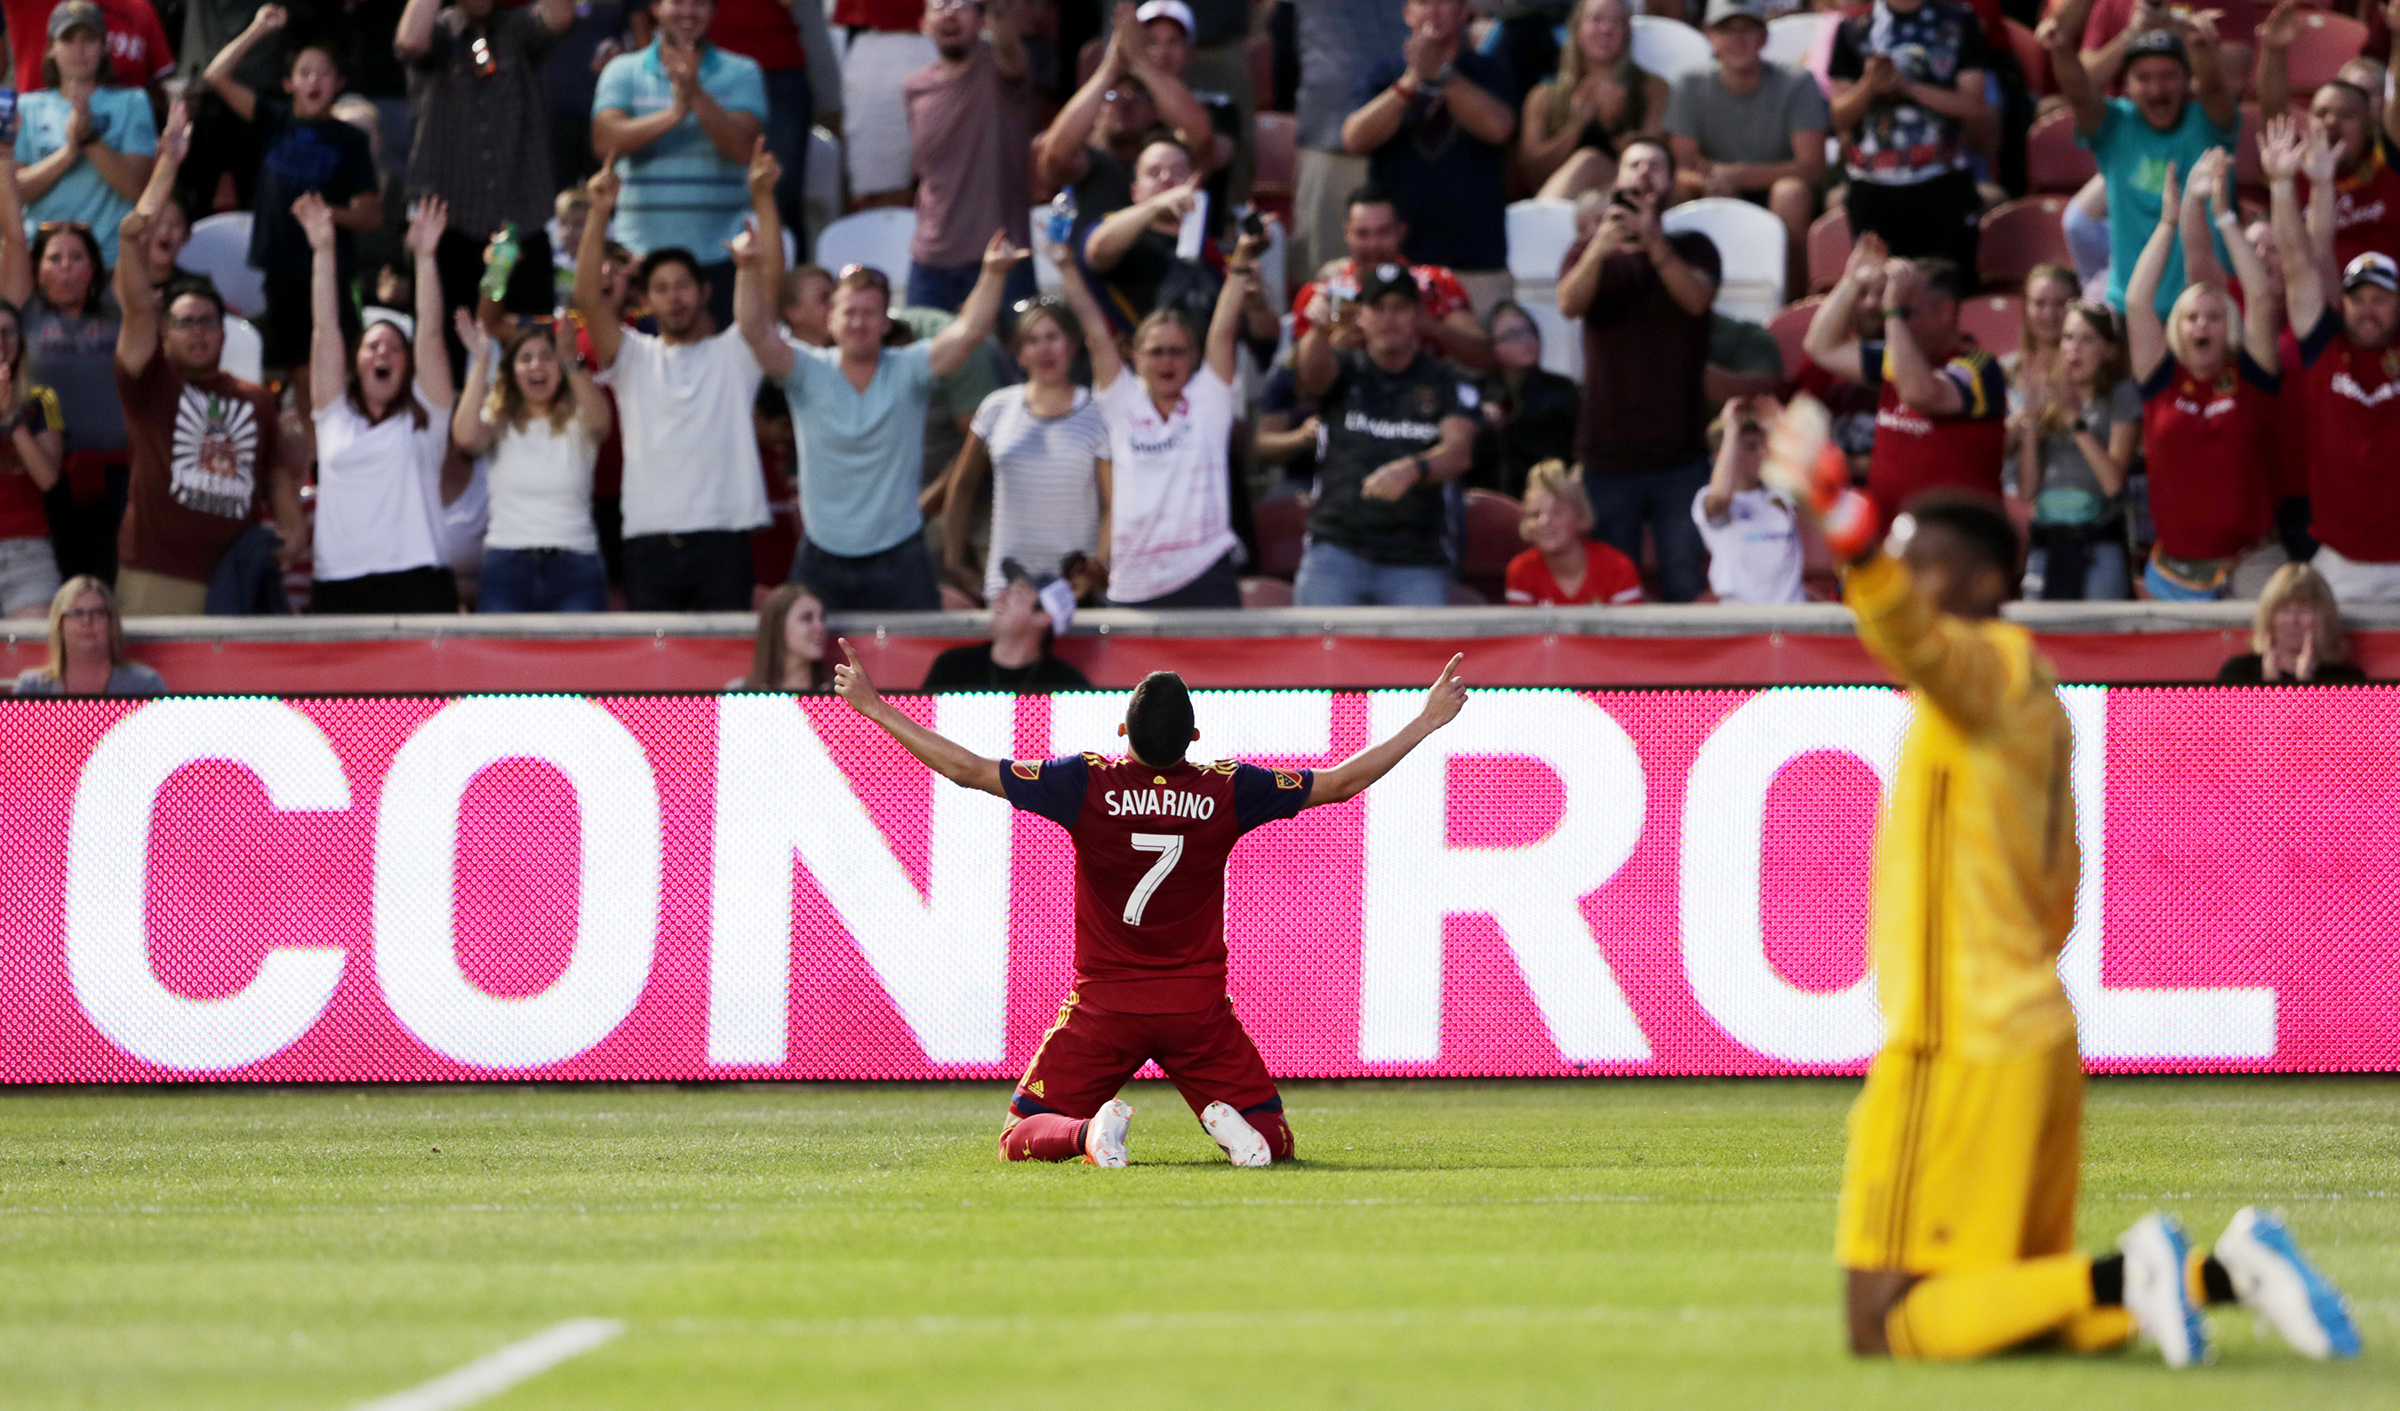 Real Salt Lake forward Jefferson Savarino (7) celebrates after scoring a goal as Real Salt Lake and New York City FC play at Rio Tinto Stadium in Sandy on Saturday, Aug. 3, 2019.